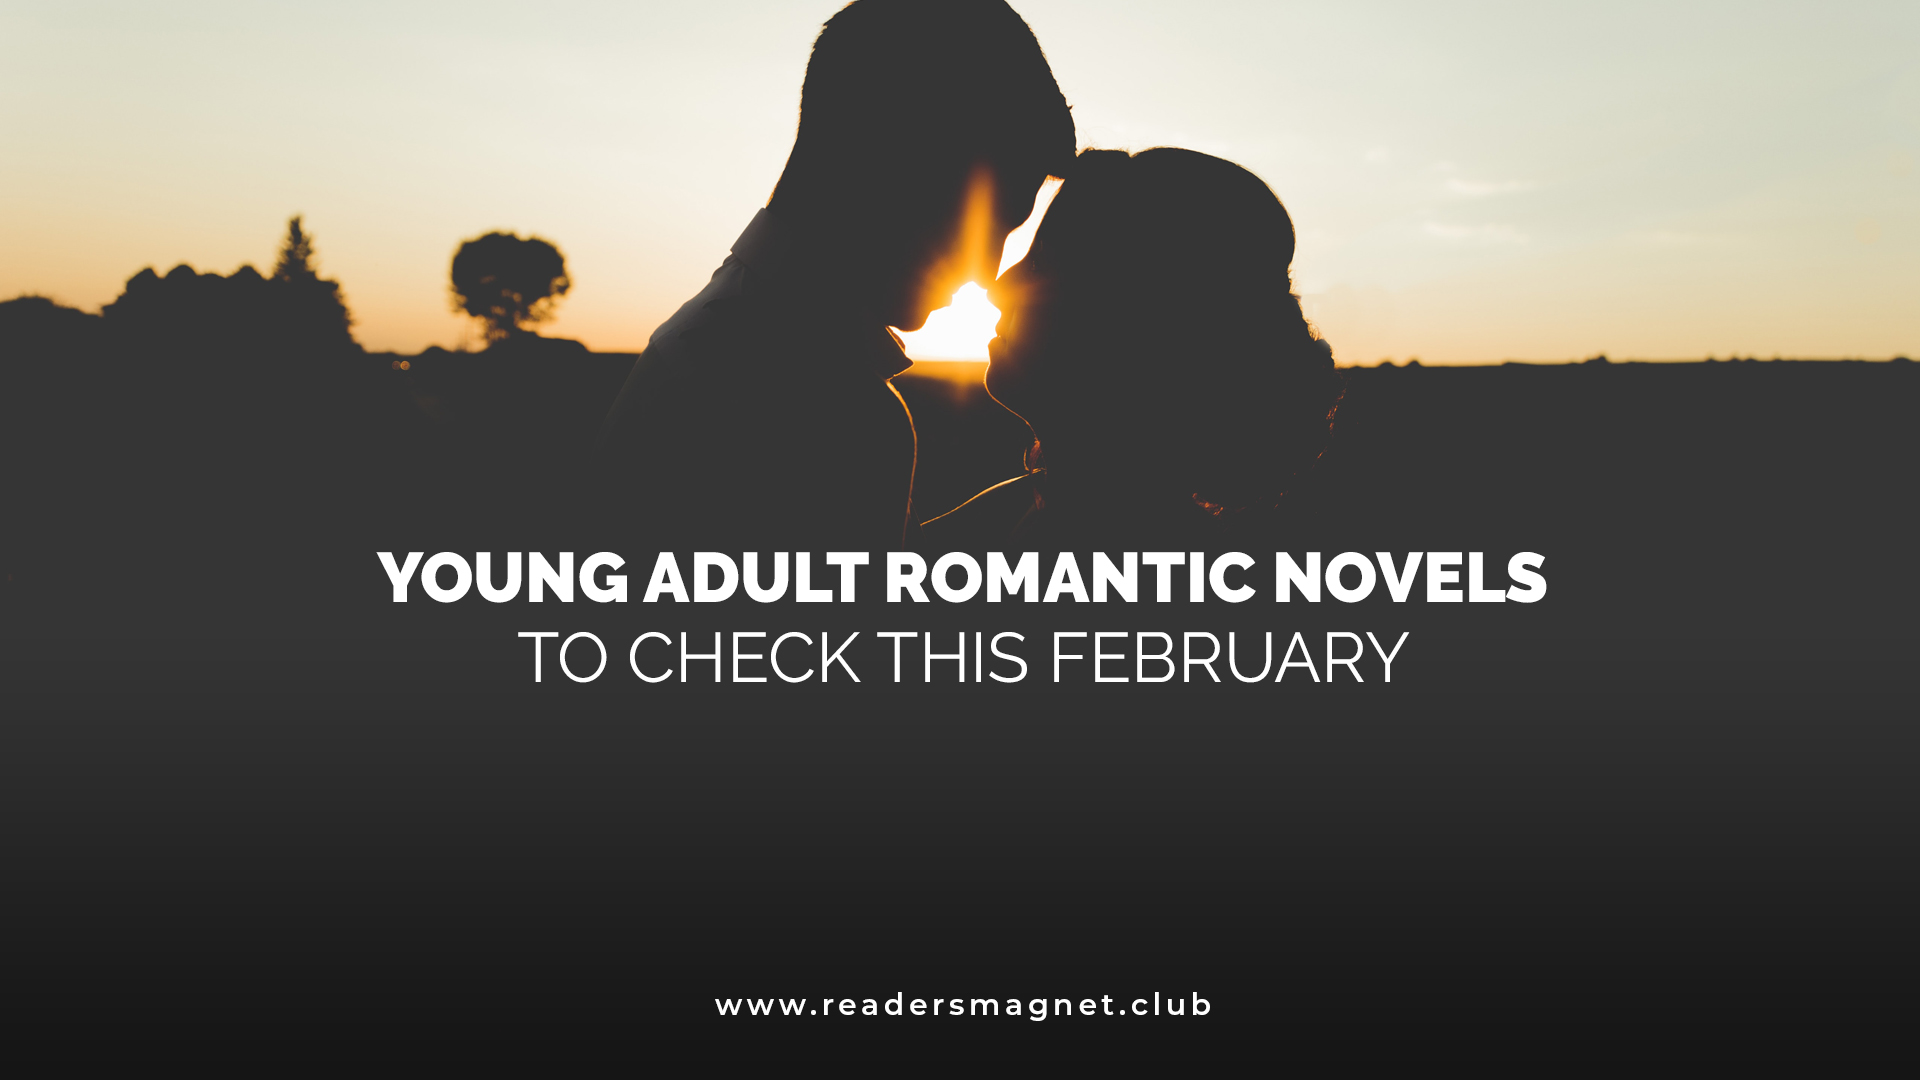 Young Adult Romantic Novels to Check This February banner